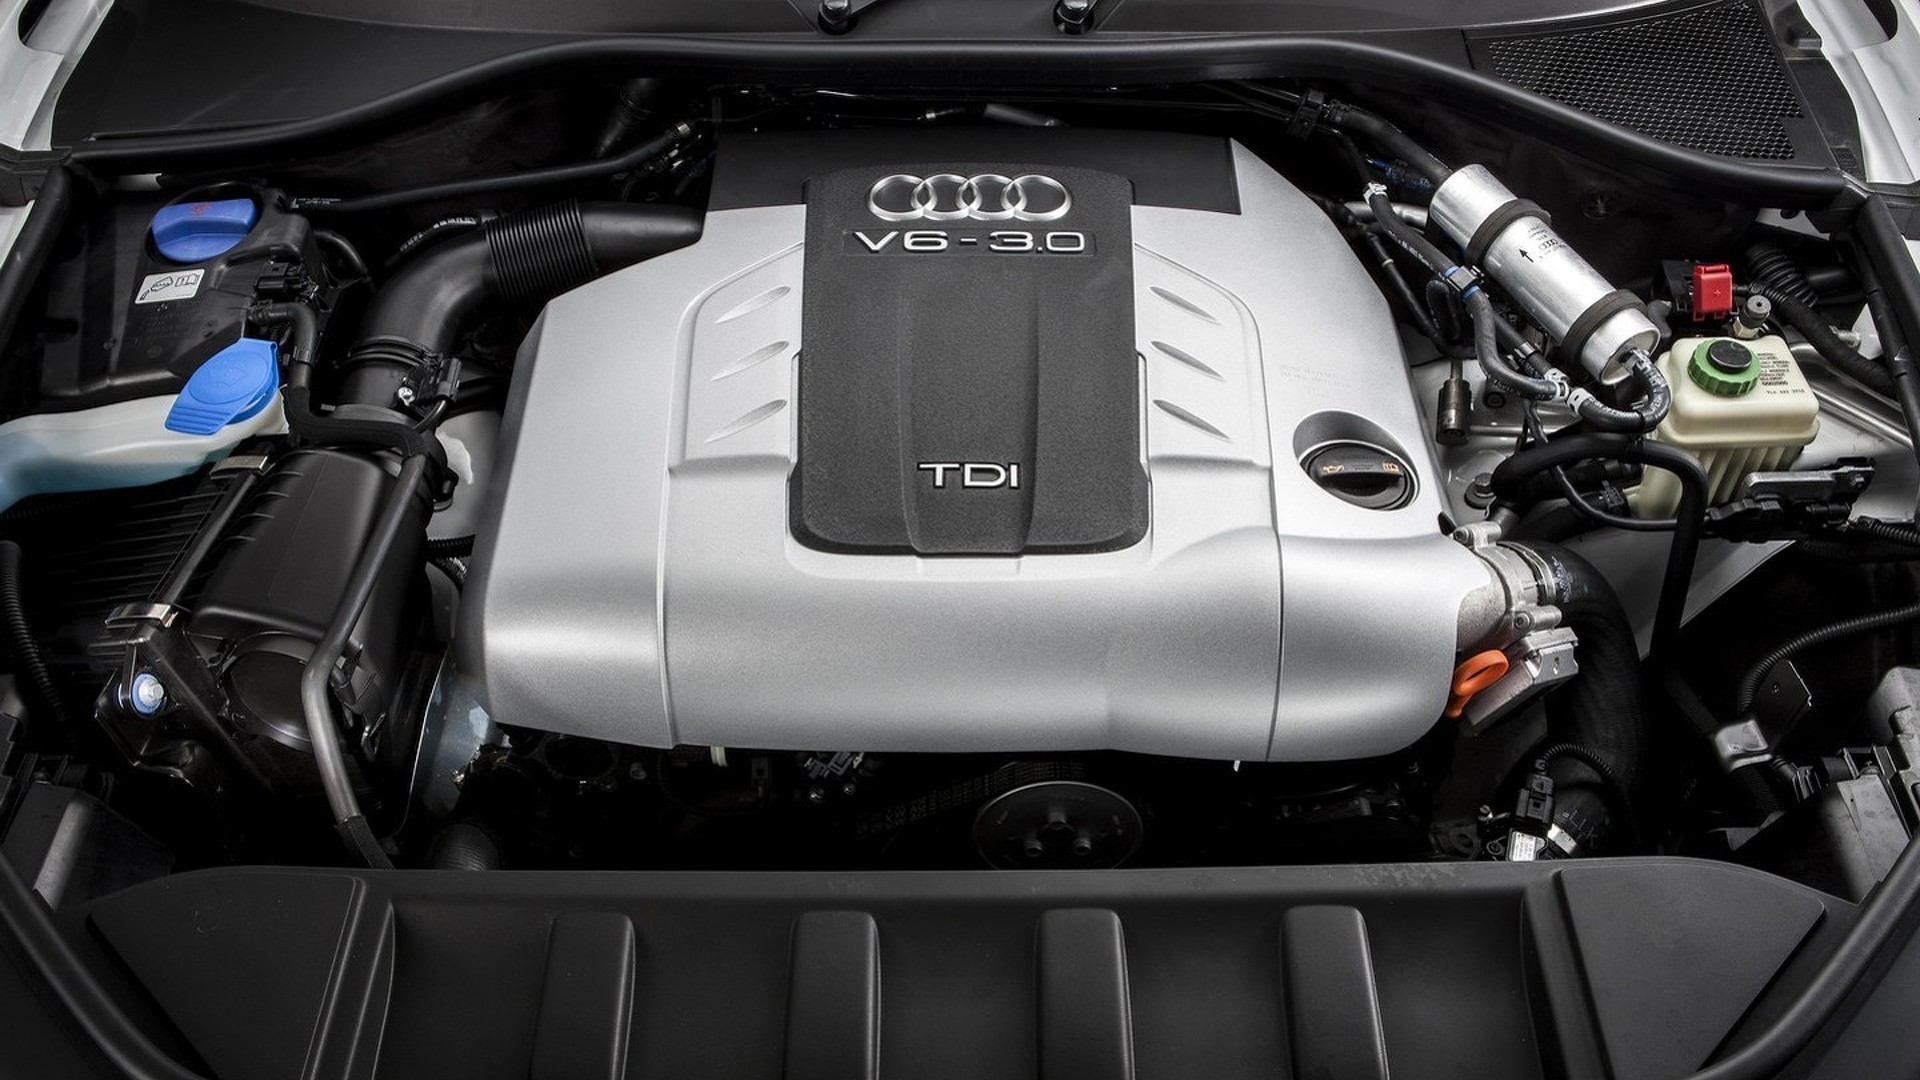 Volkswagen of America admits 85,000+ cars with V6 3.0 TDI engine have defeat device